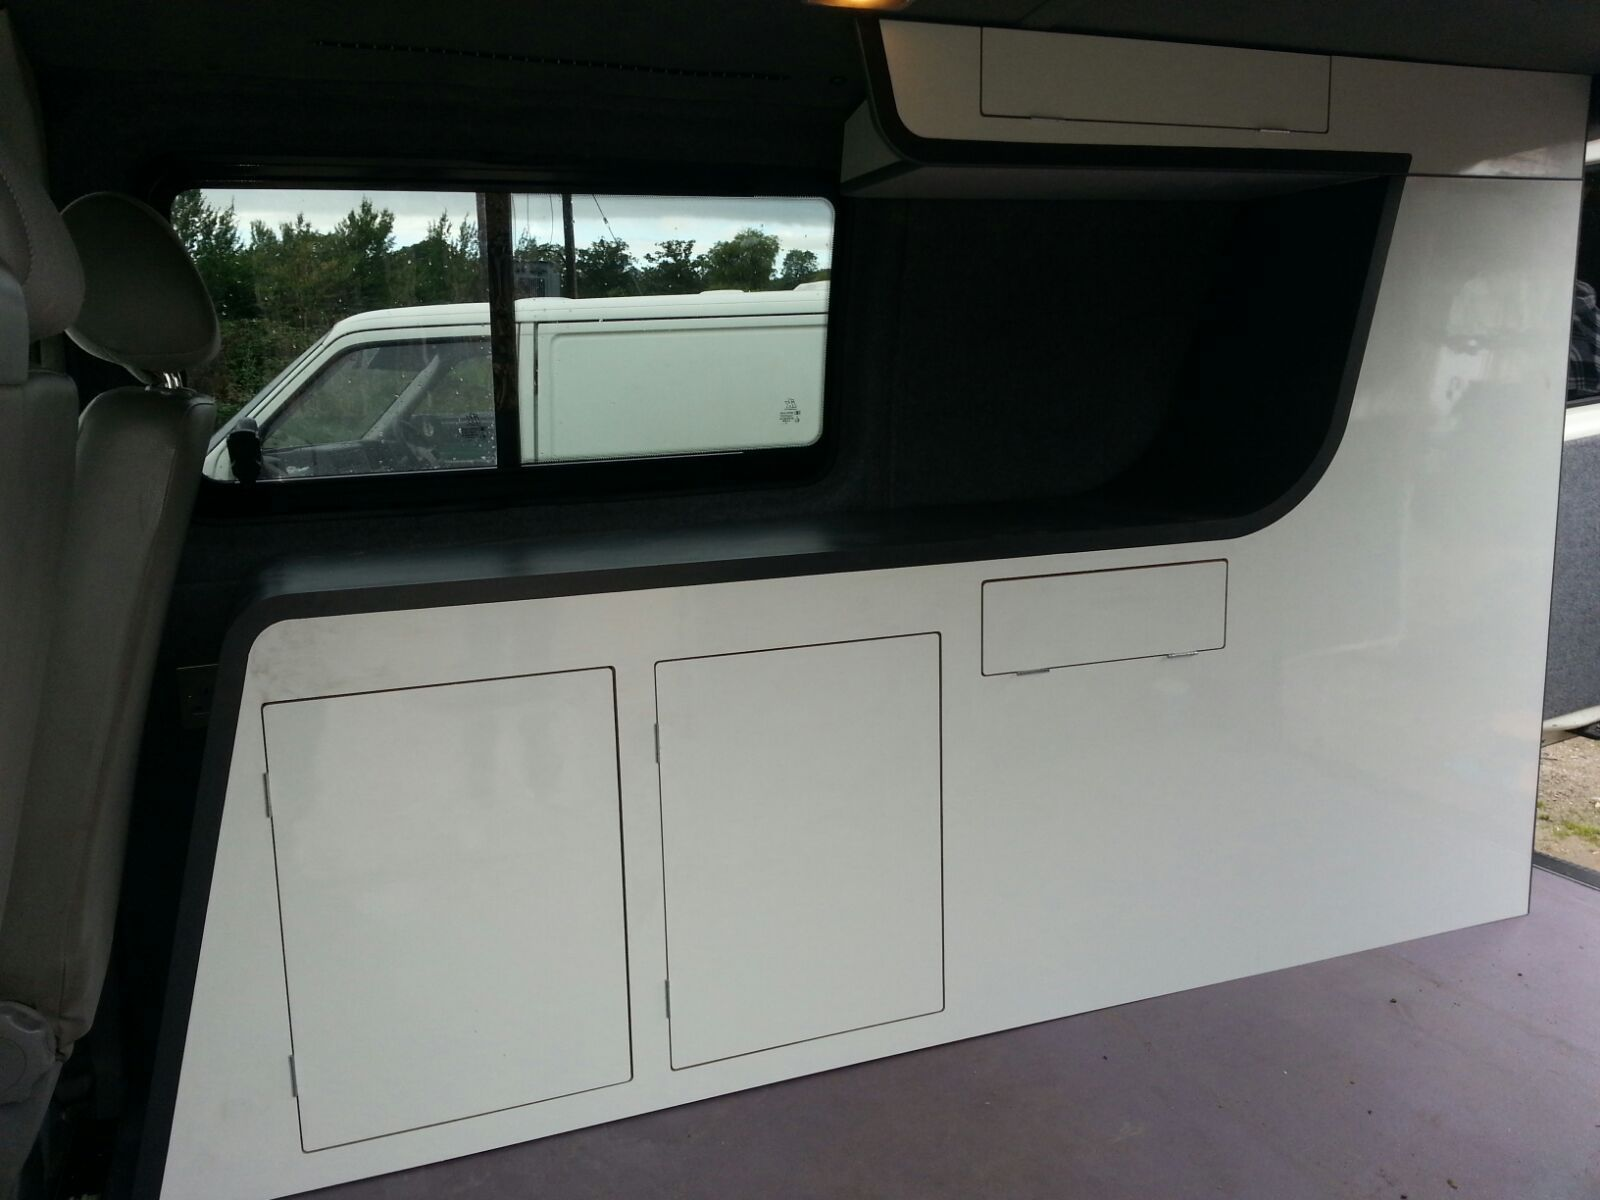 VW T5 CONVERSION LWB TRANSPORTERT4 CAMPER VAN UNITINTERIOR UNIT